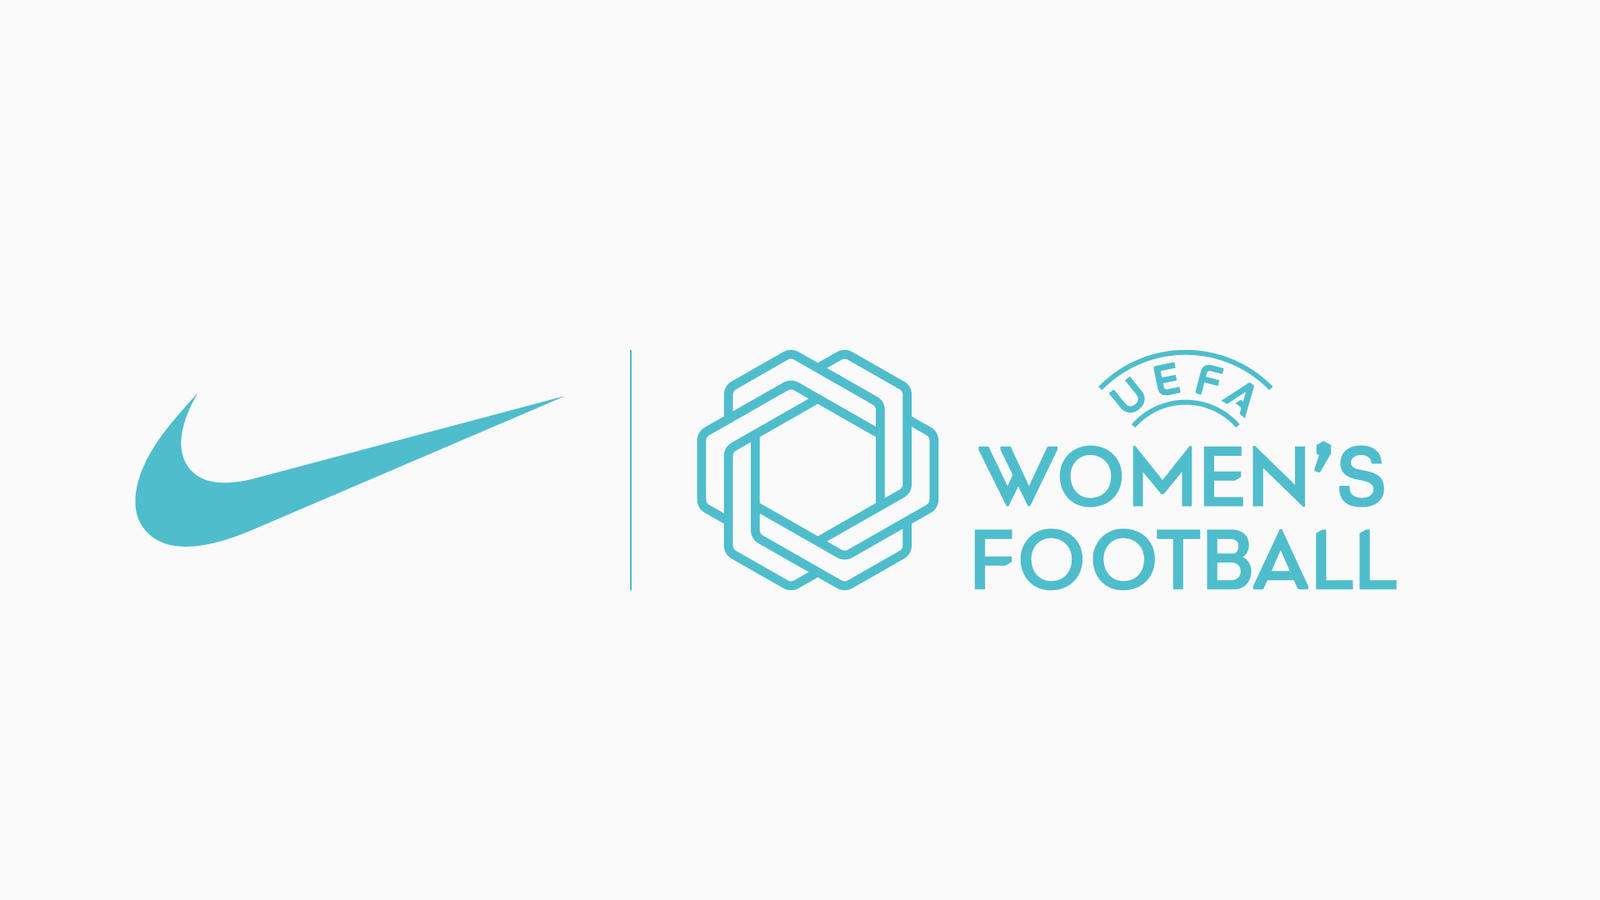 Nike and UEFA Join Forces to Grow Women's Football 1